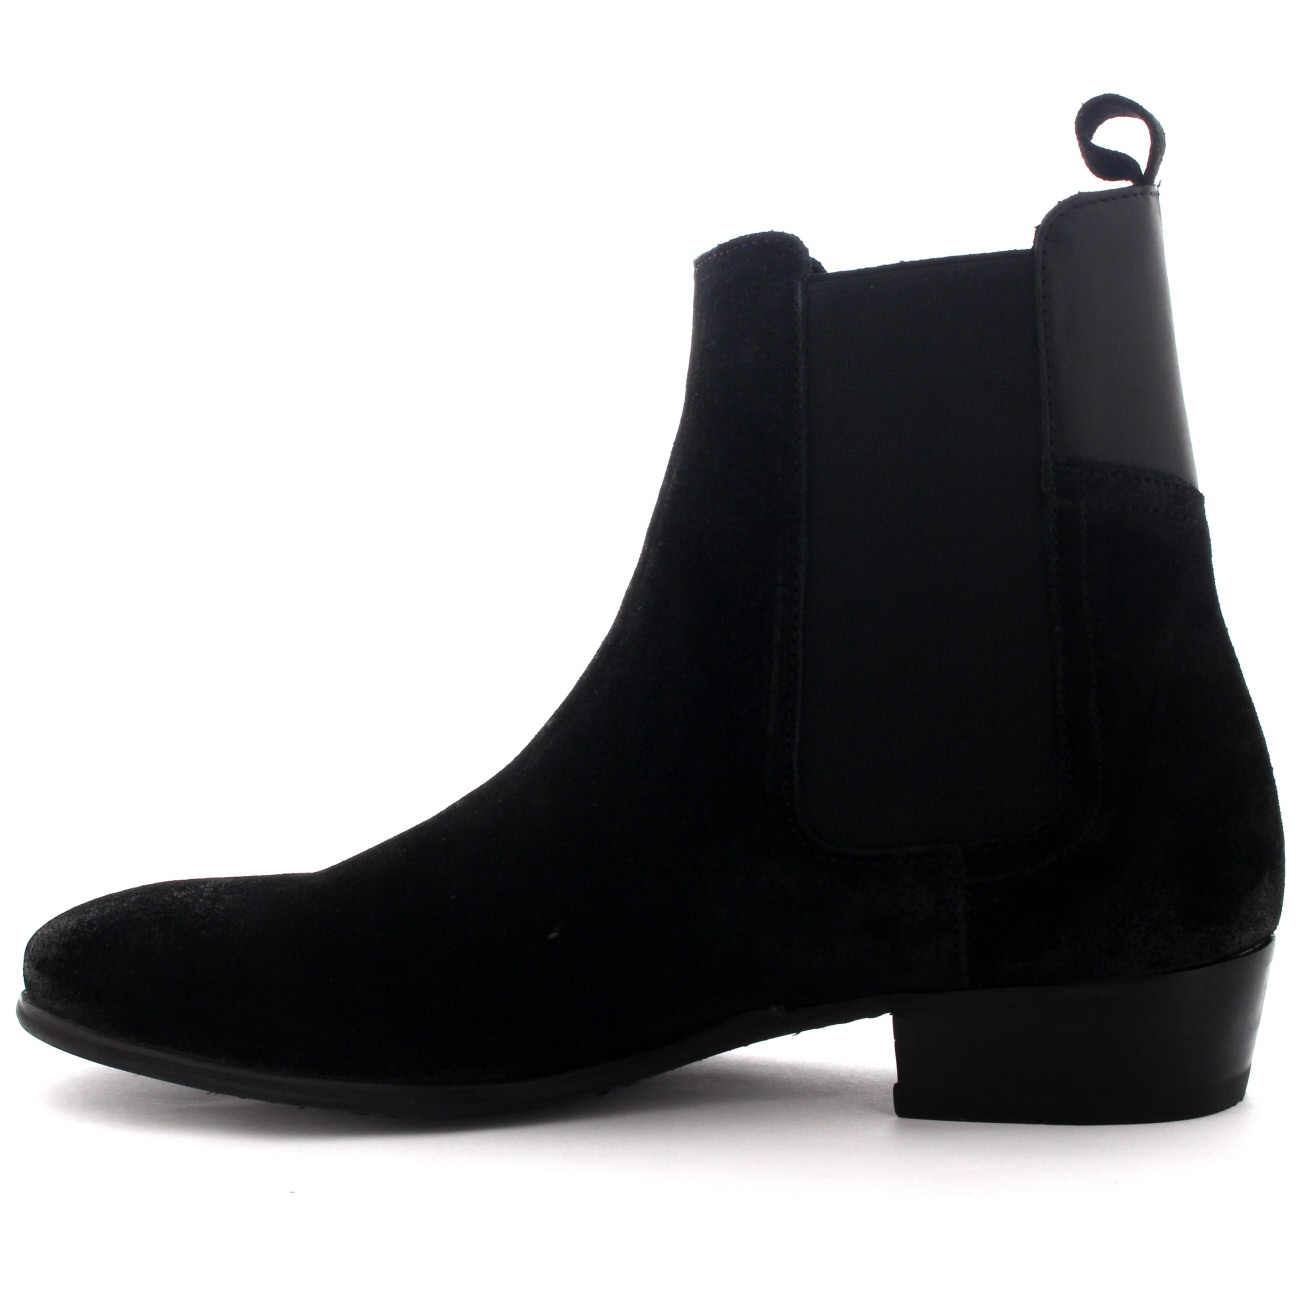 Read more Black Watts Chelsea Boots